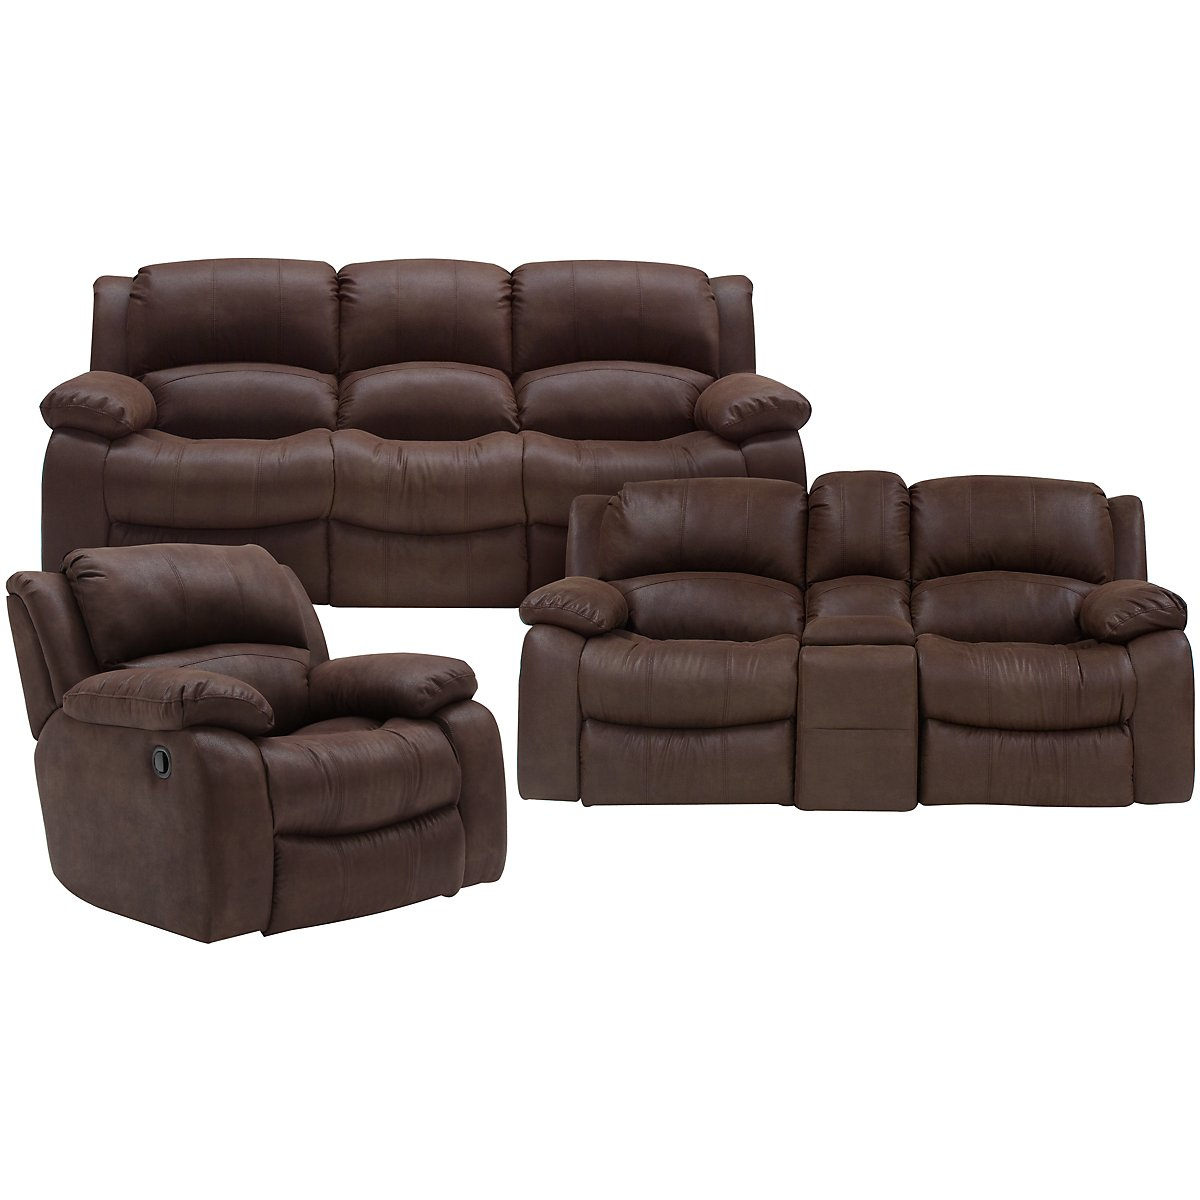 Tyler2 Dark Brown Microfiber Power Reclining Living Room